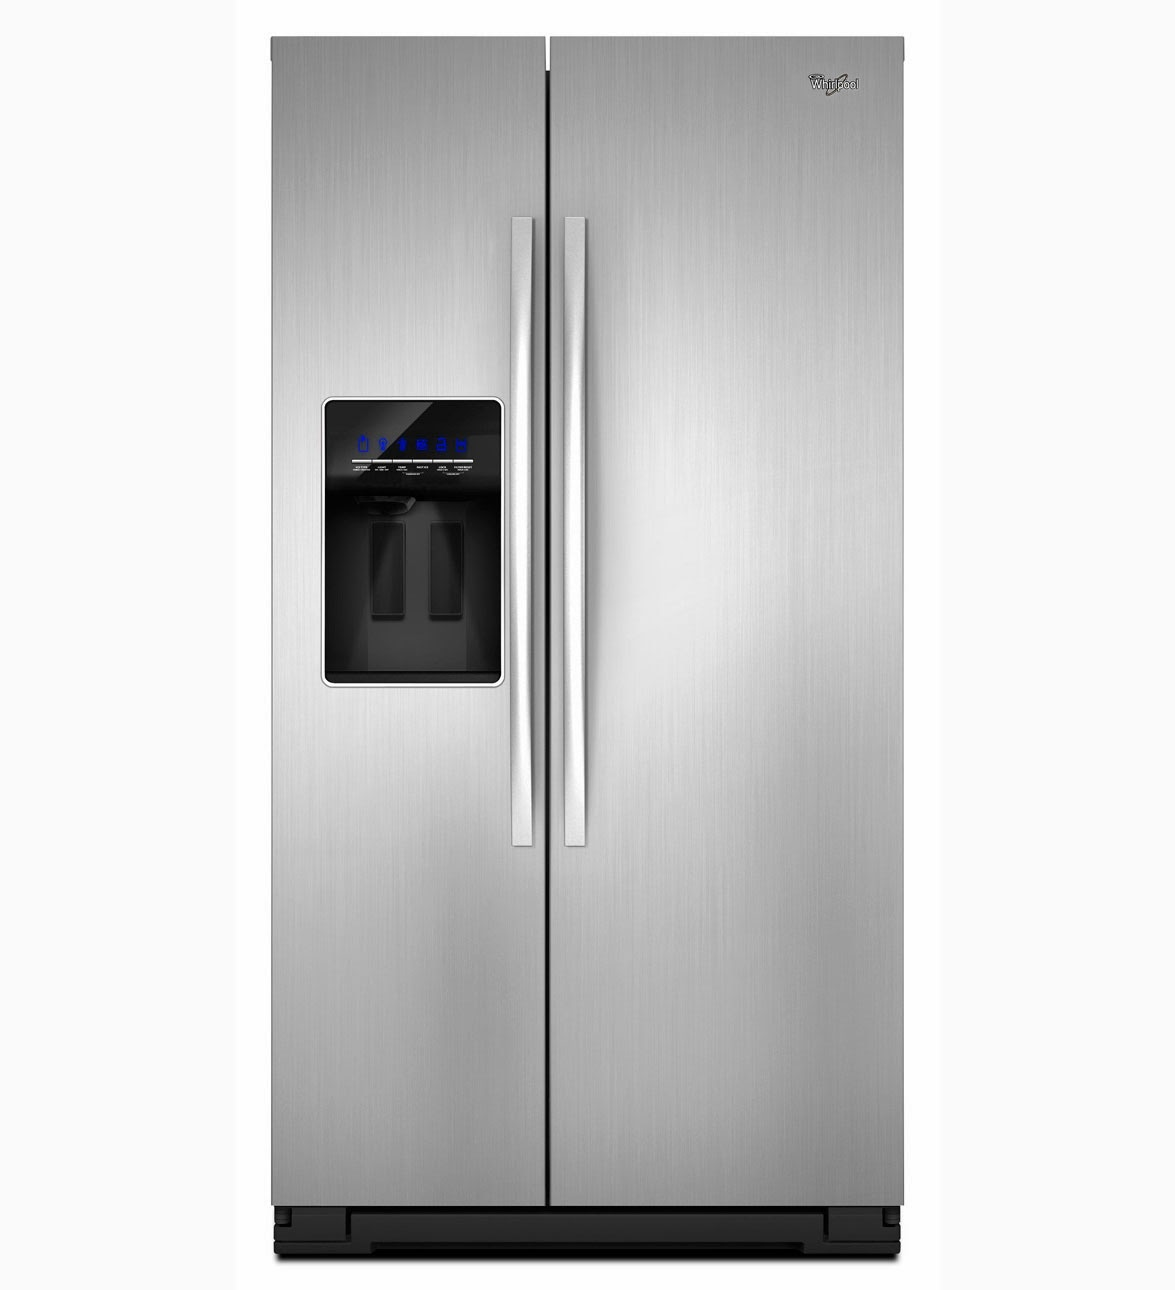 whirlpool refrigerator brand whirlpool gsf26c4exs gold. Black Bedroom Furniture Sets. Home Design Ideas